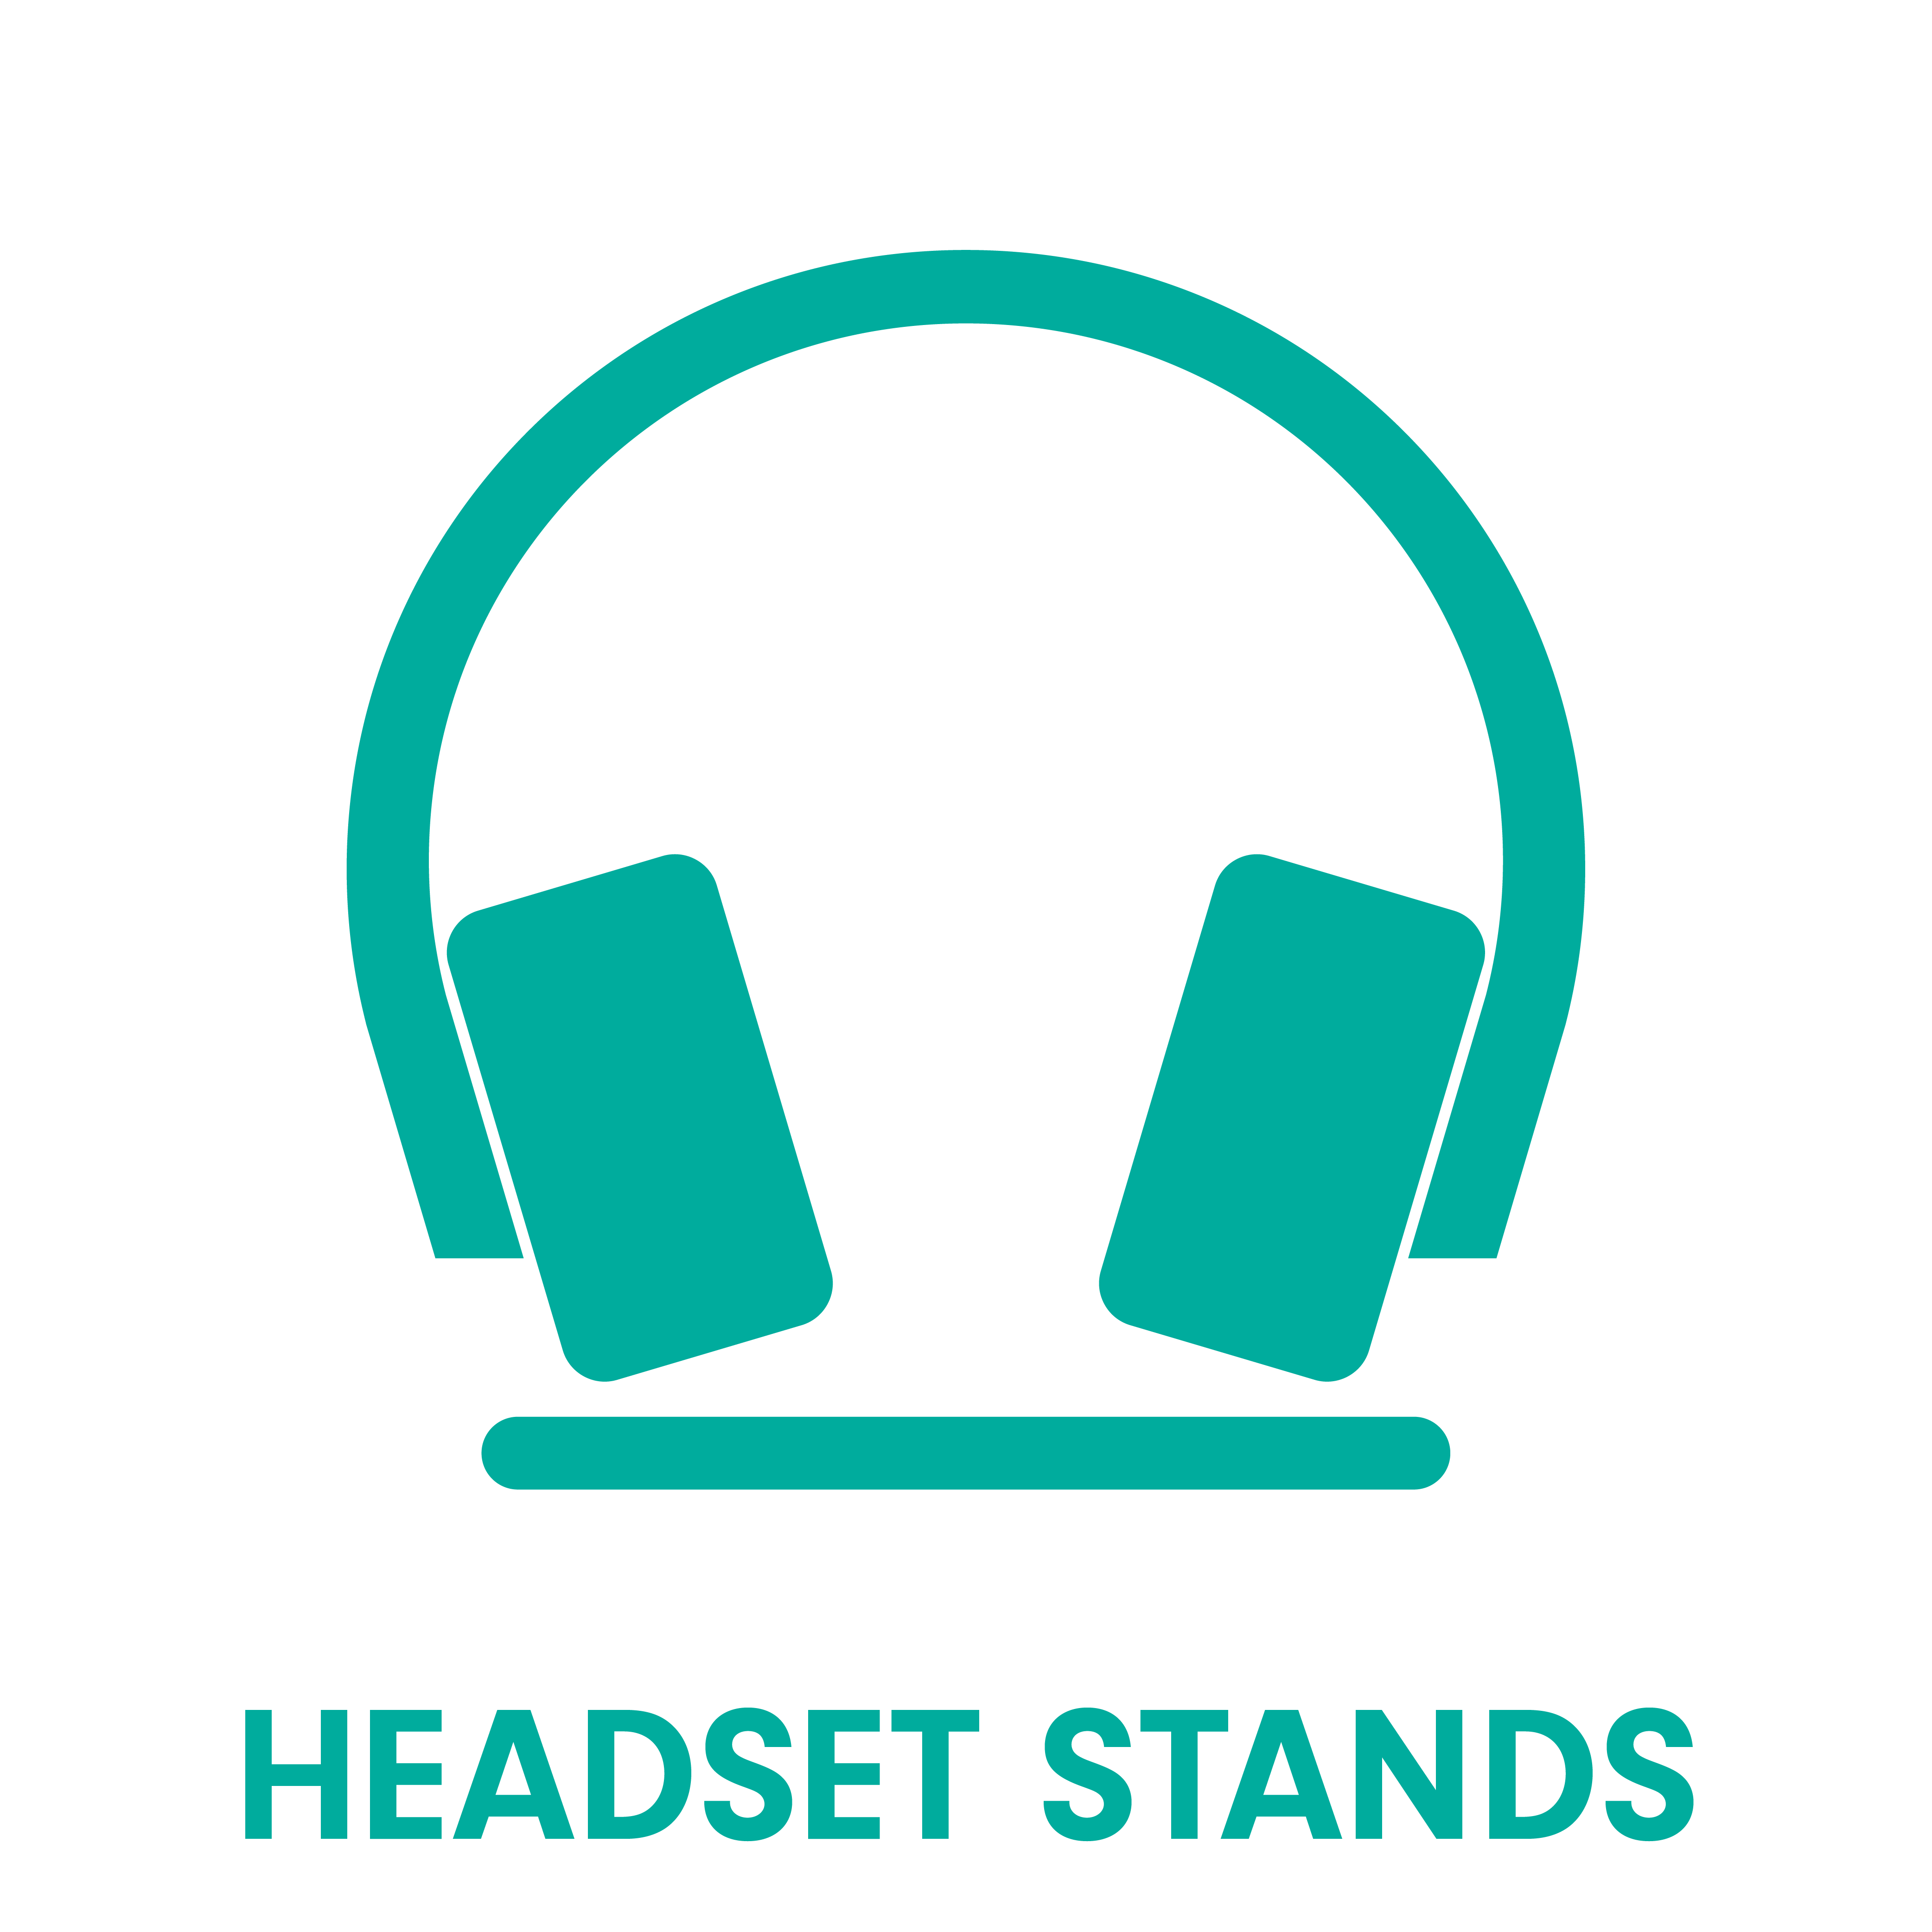 Headset Stands category icon